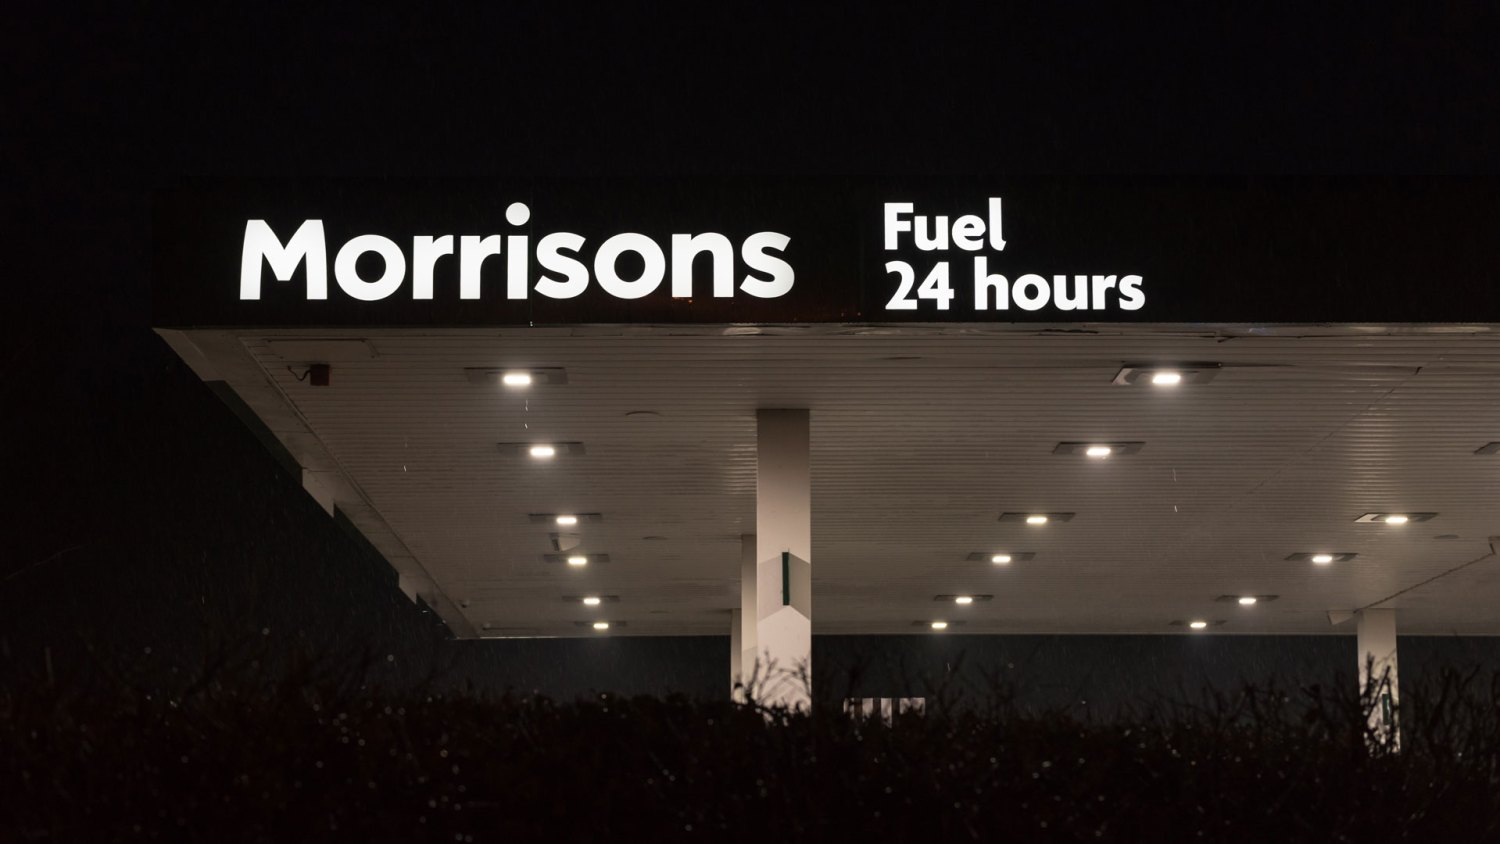 Morrisons Fuel 24 Hours